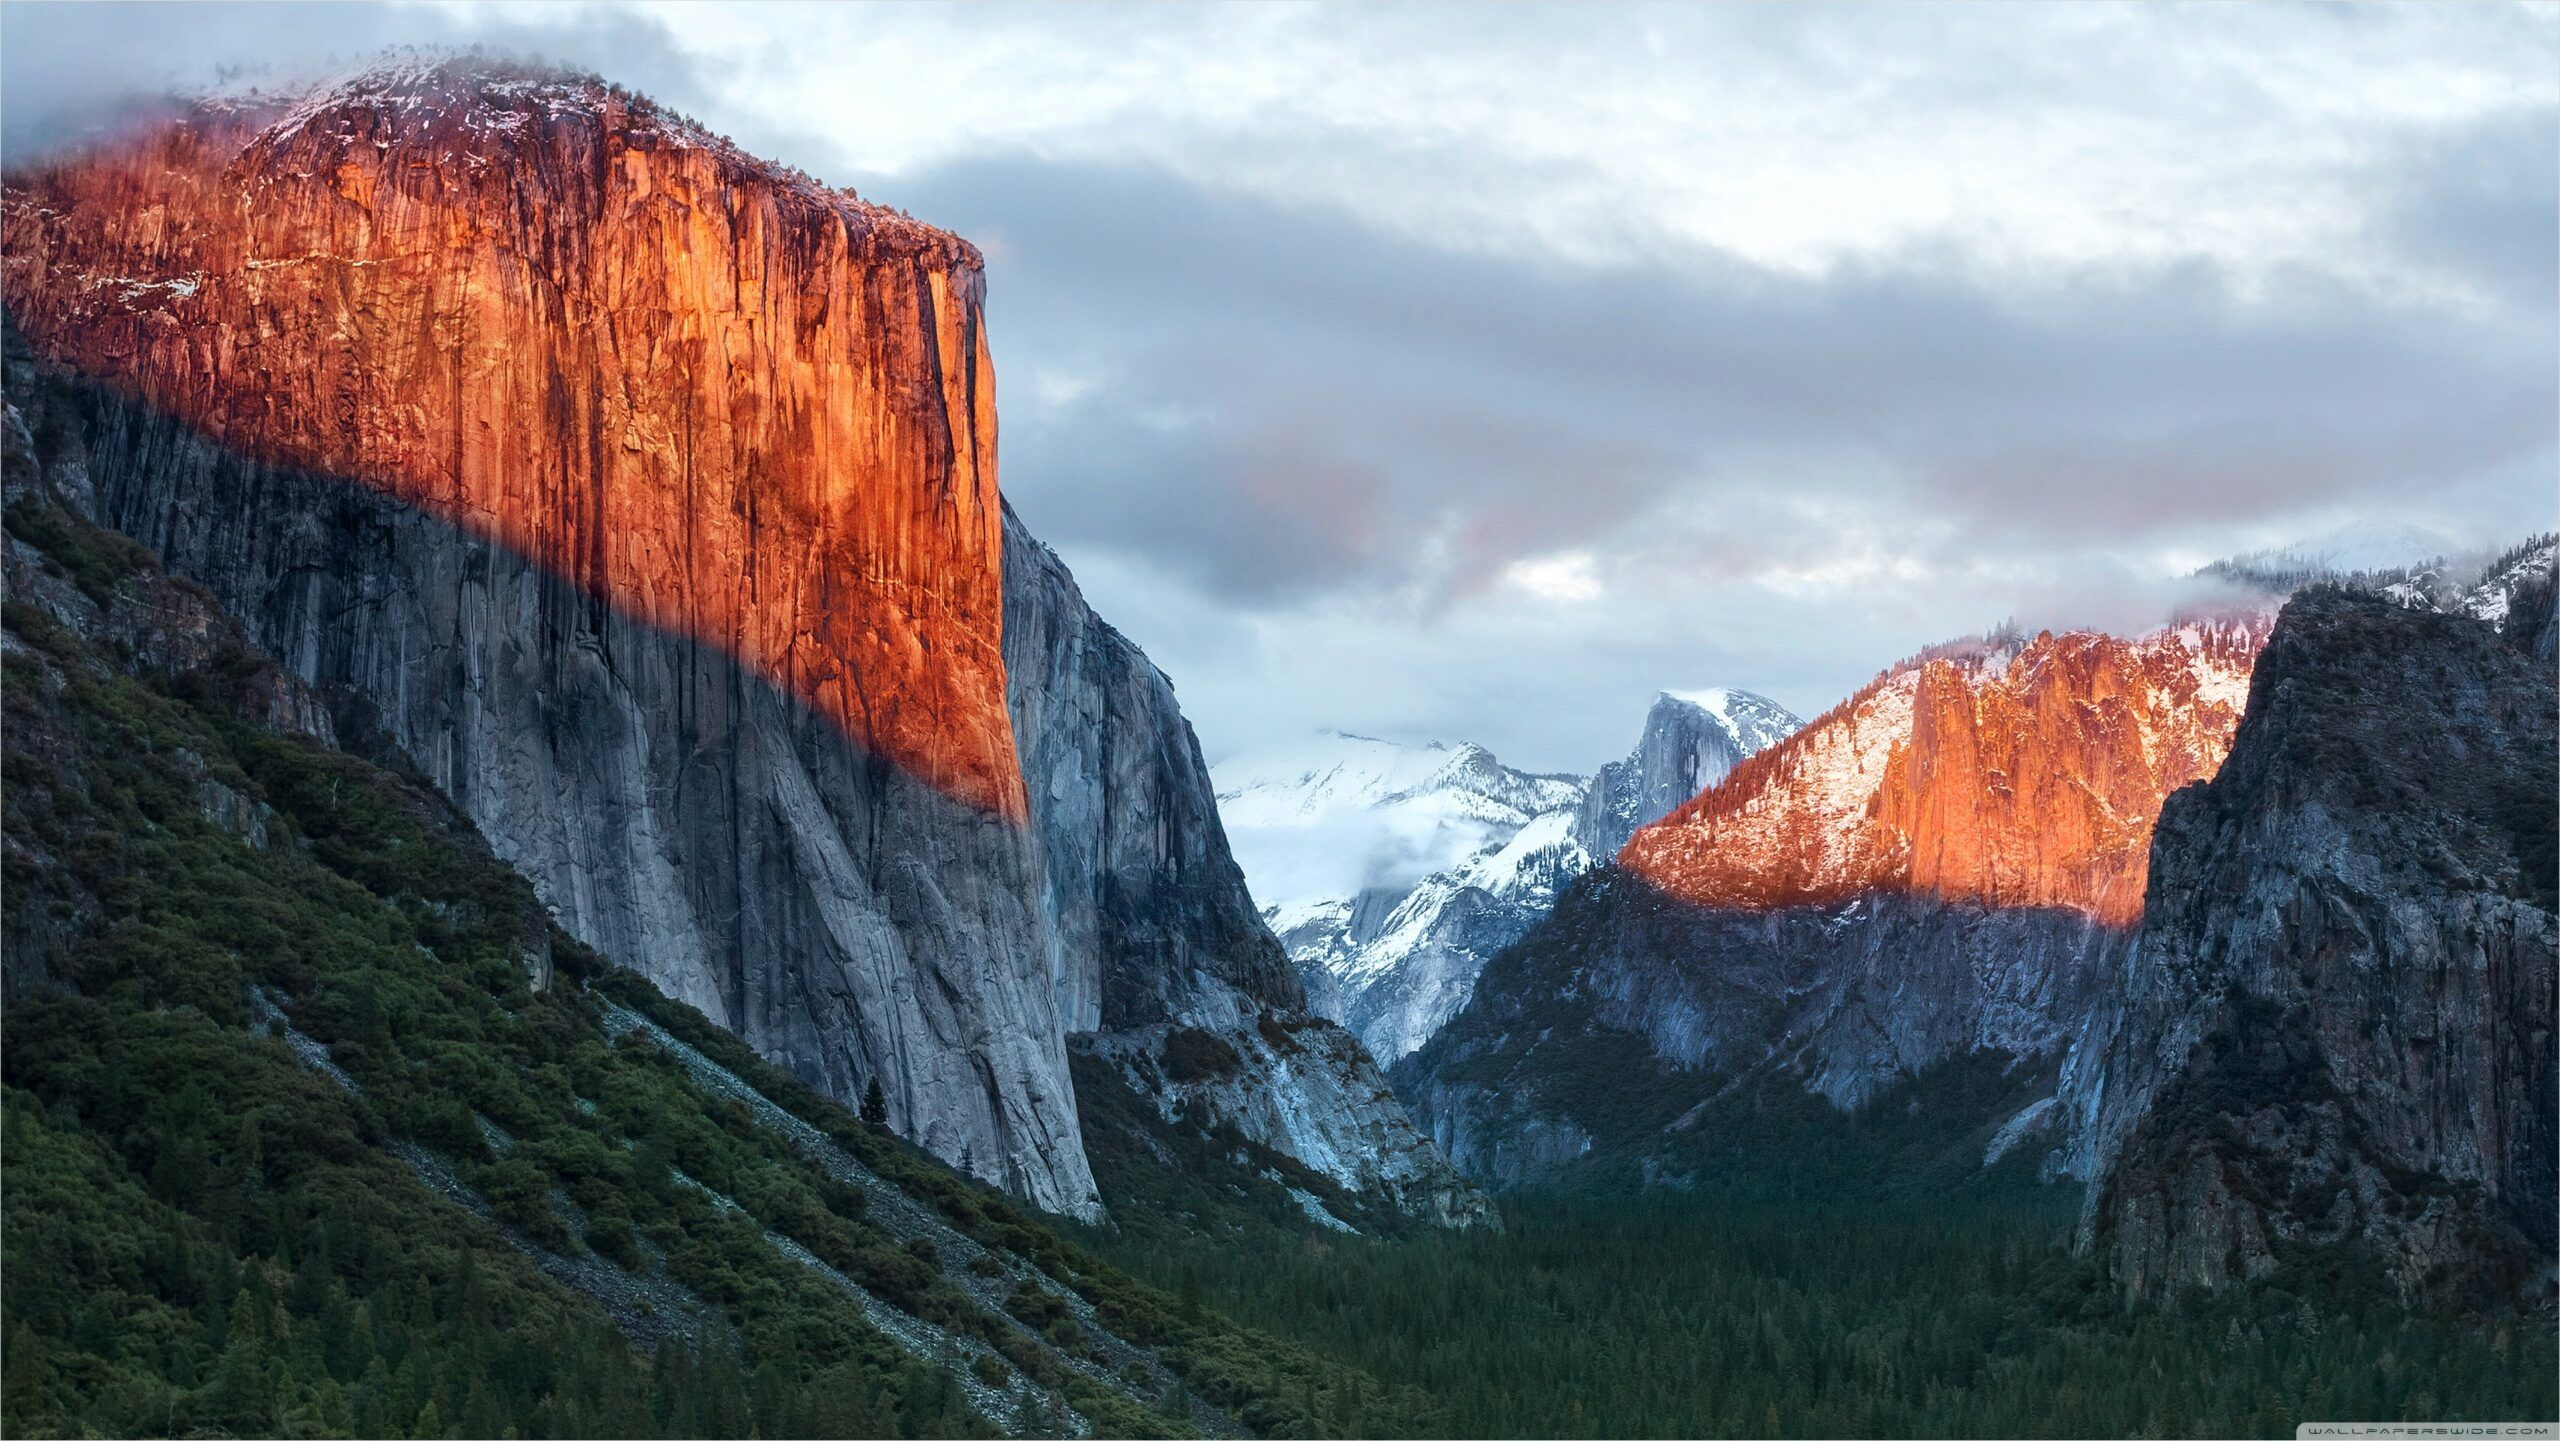 4k 21 9 Wallpaper Yosemite In 2020 Yosemite Wallpaper Osx Yosemite Apple Wallpaper